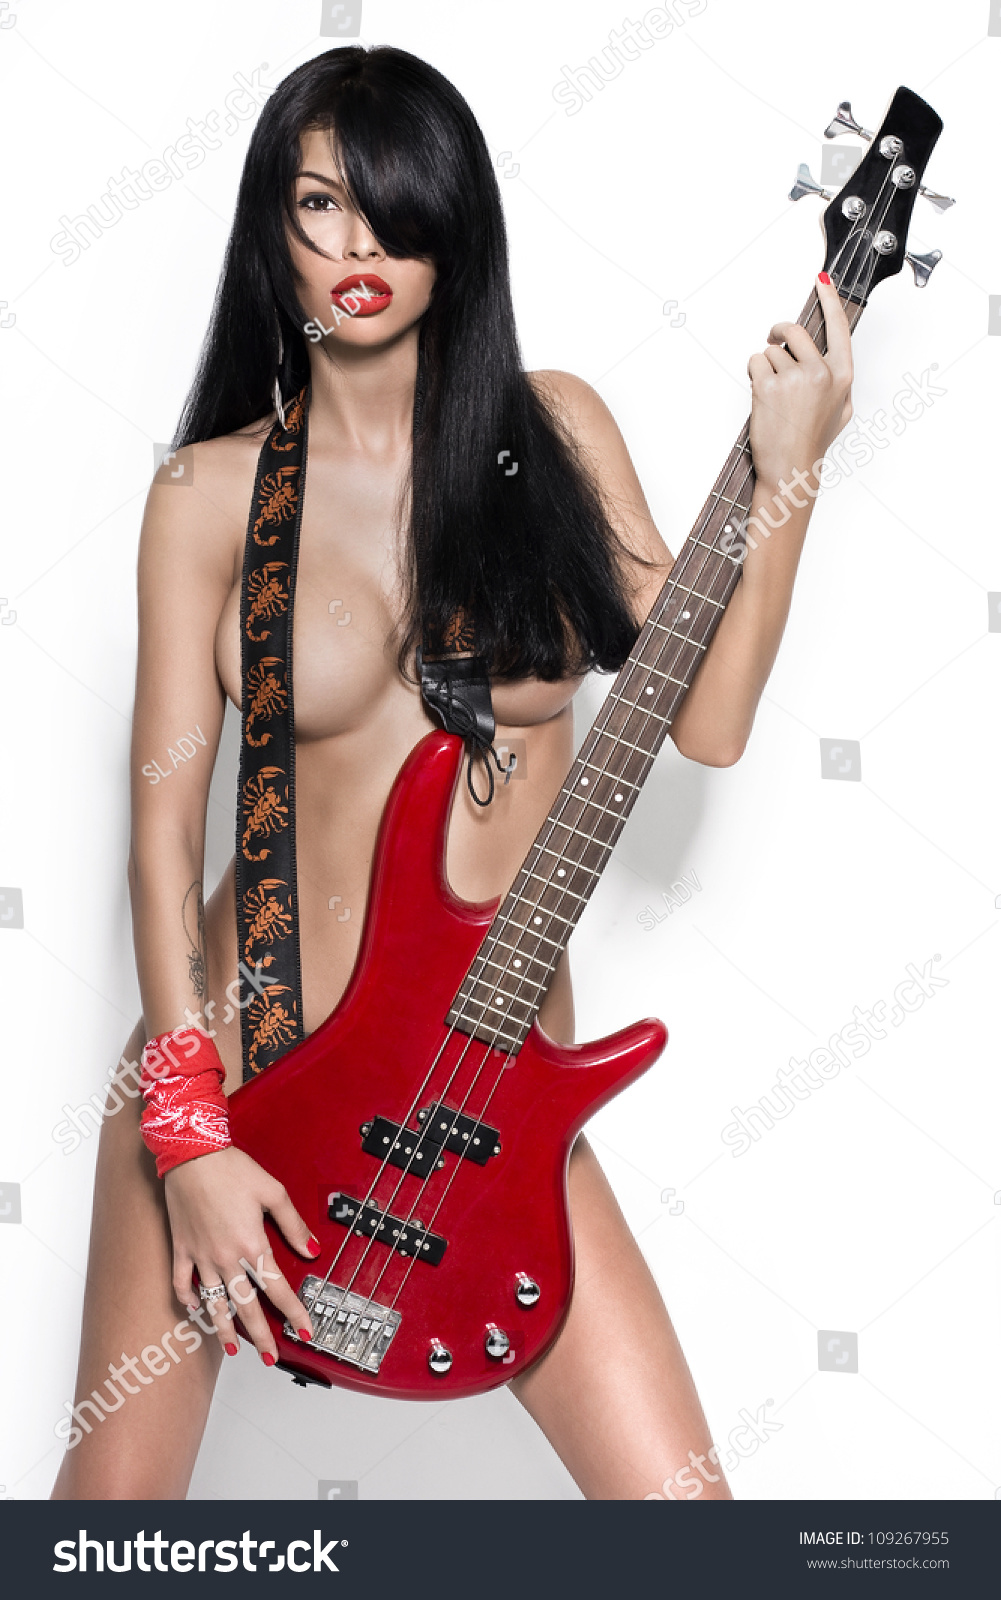 Guitar girl hot music sex video